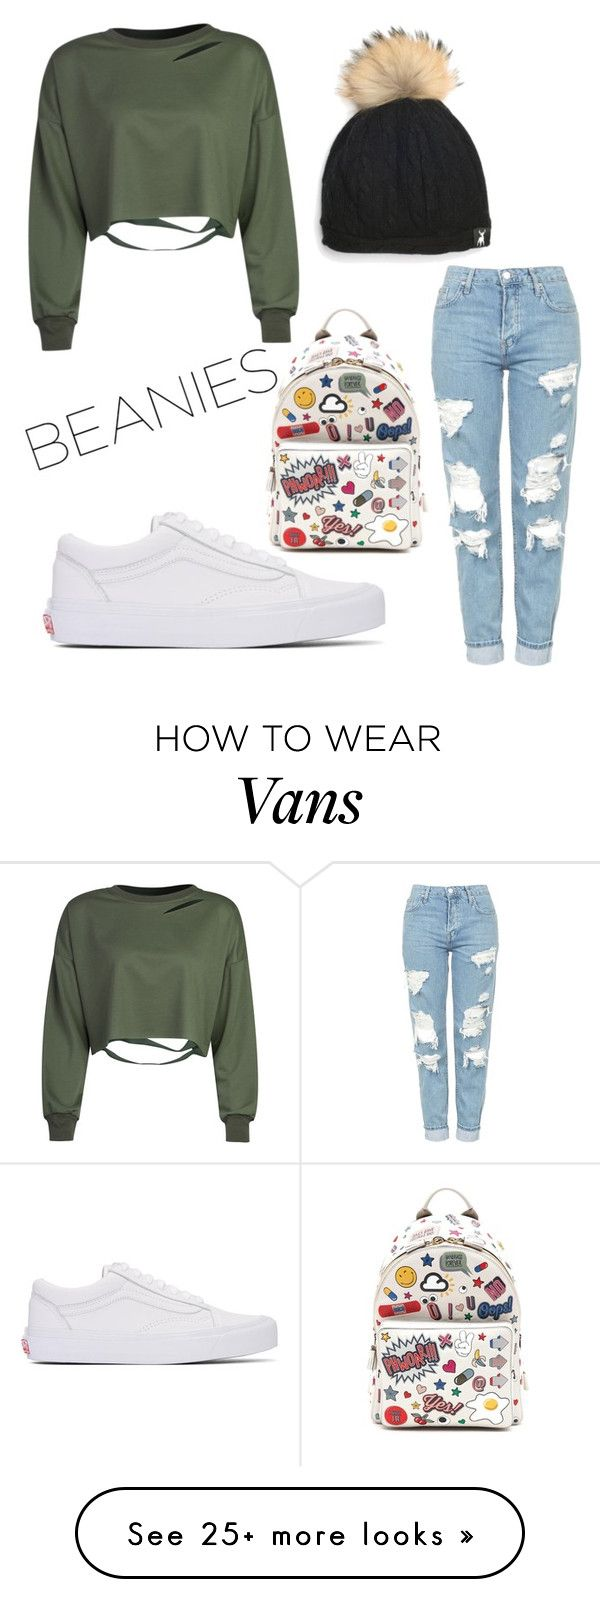 """SIMPLE LOOK"" by zgracia on Polyvore featuring Tallis, Vans, WithChic, Topshop and Anya Hindmarch"